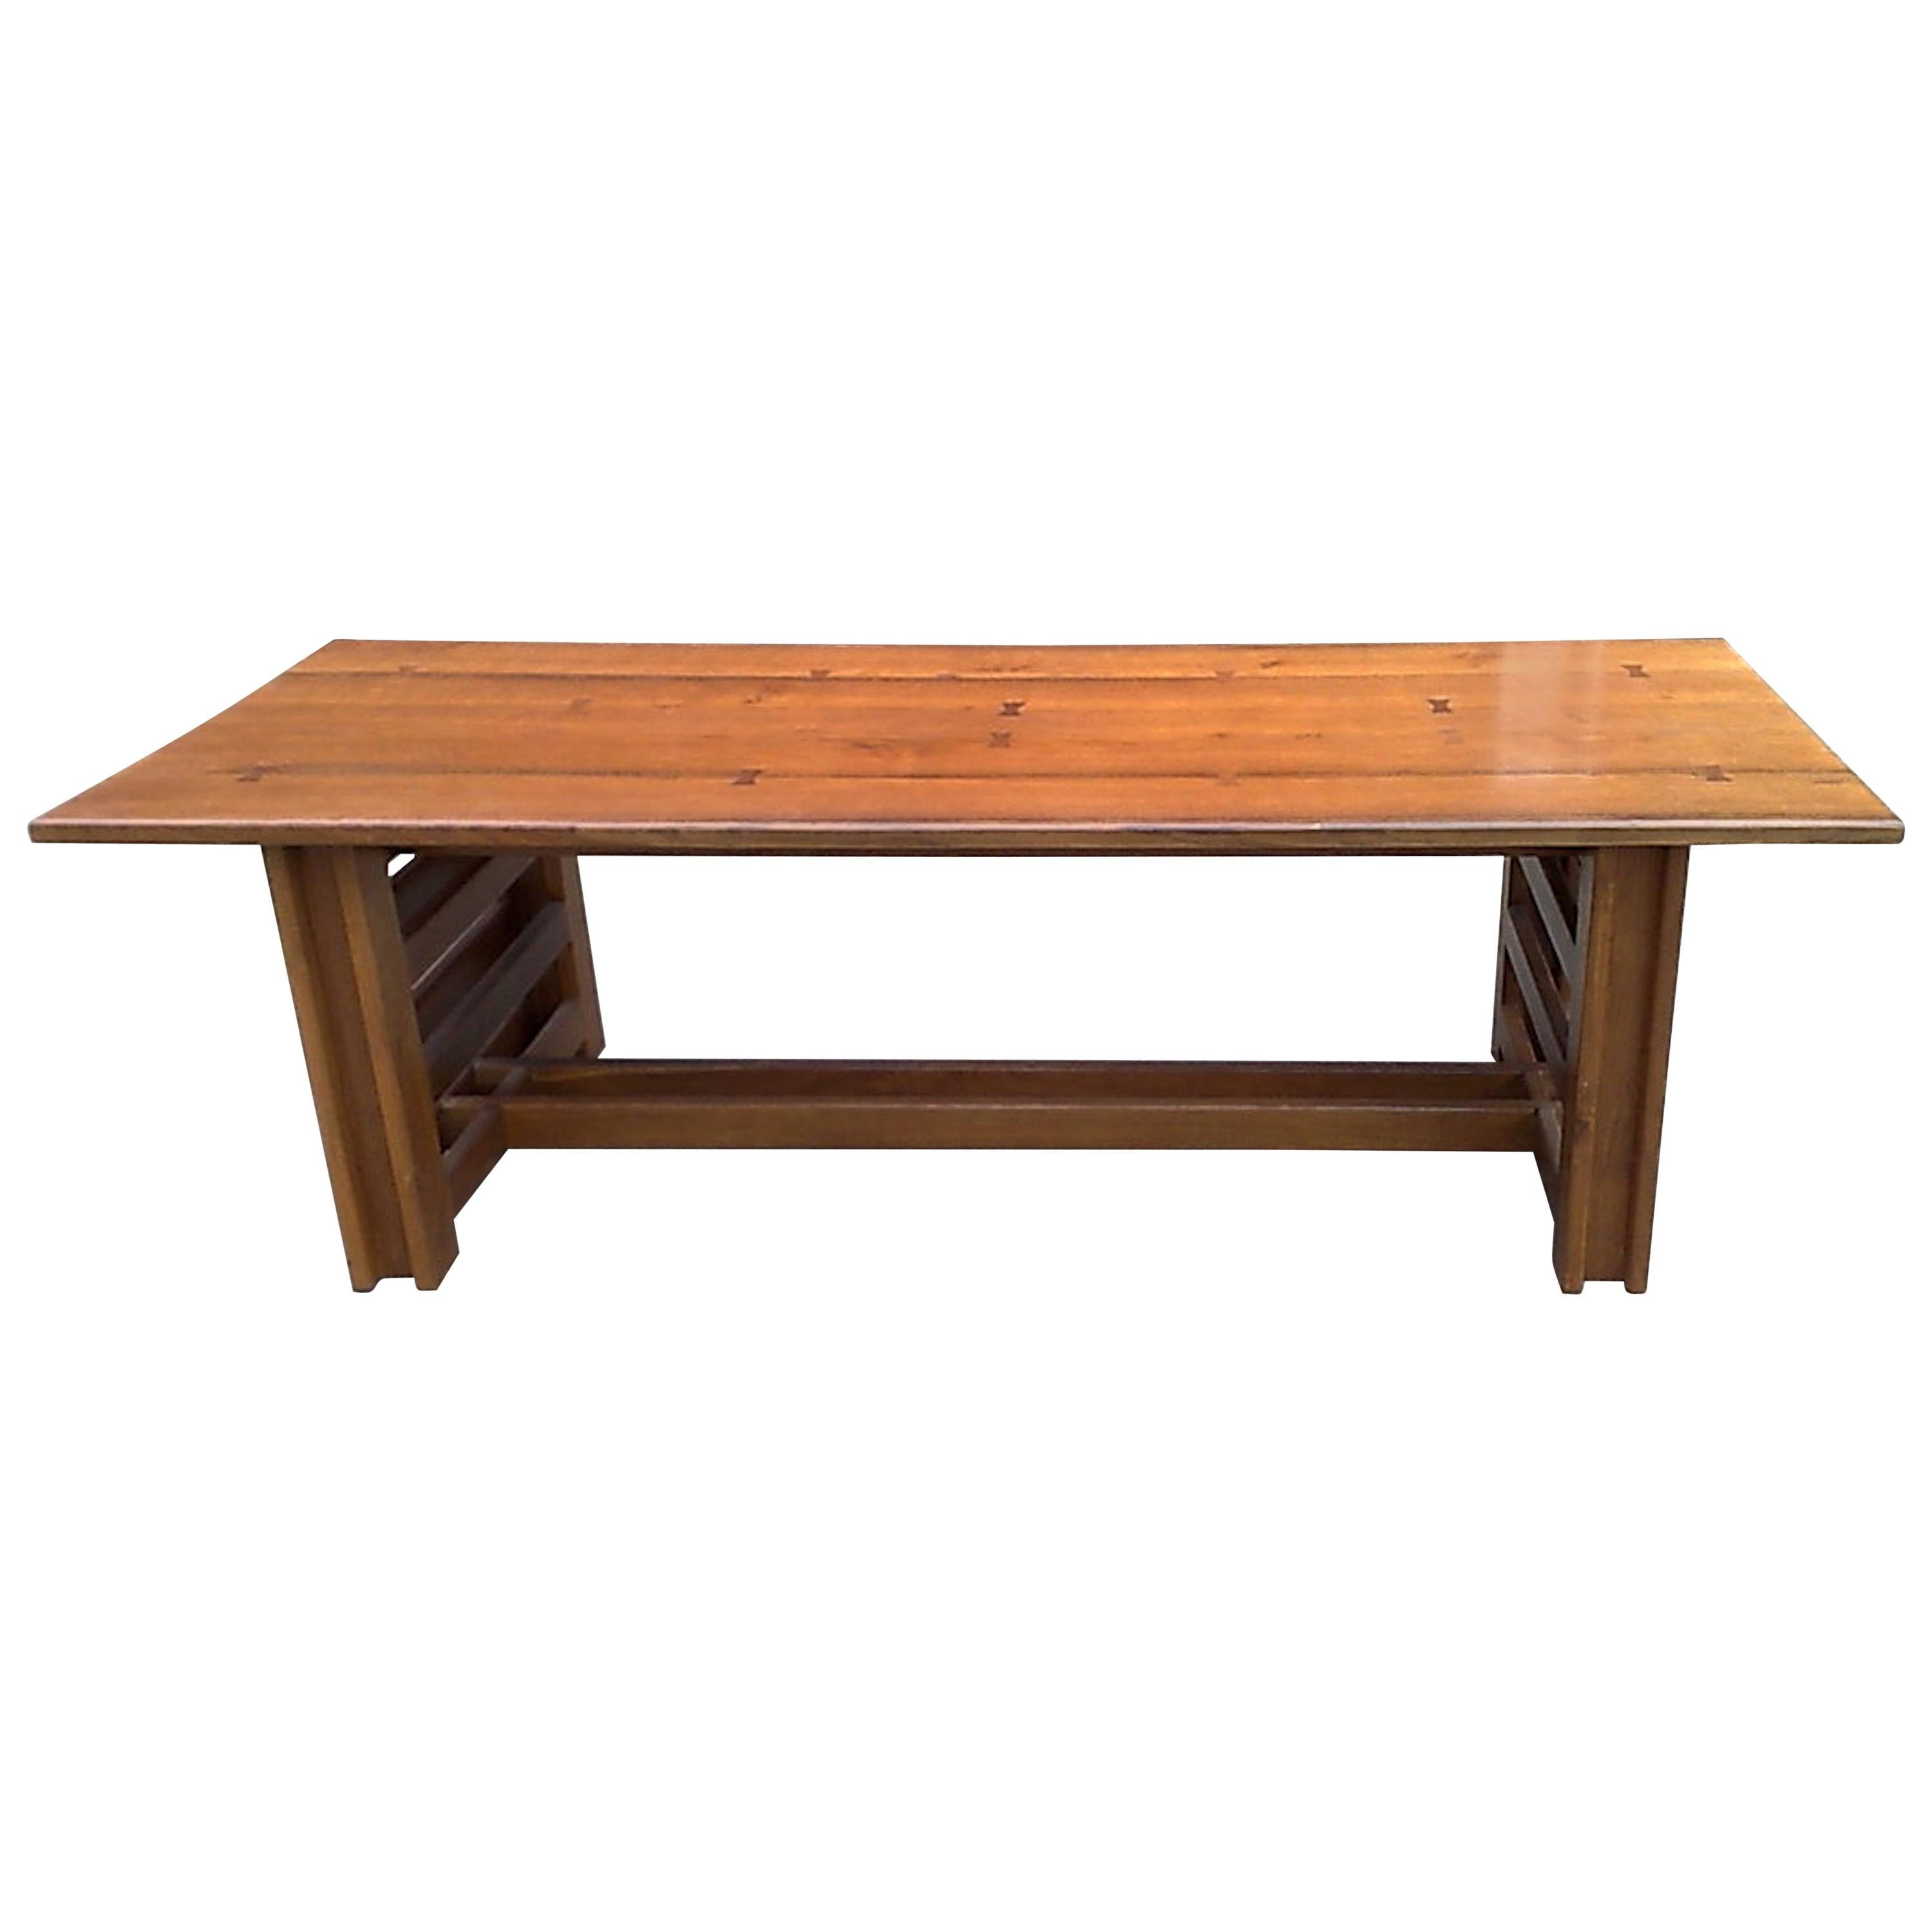 Cotswold School Oak Arts & Crafts Dining Table with Butterfly Joints to the Top